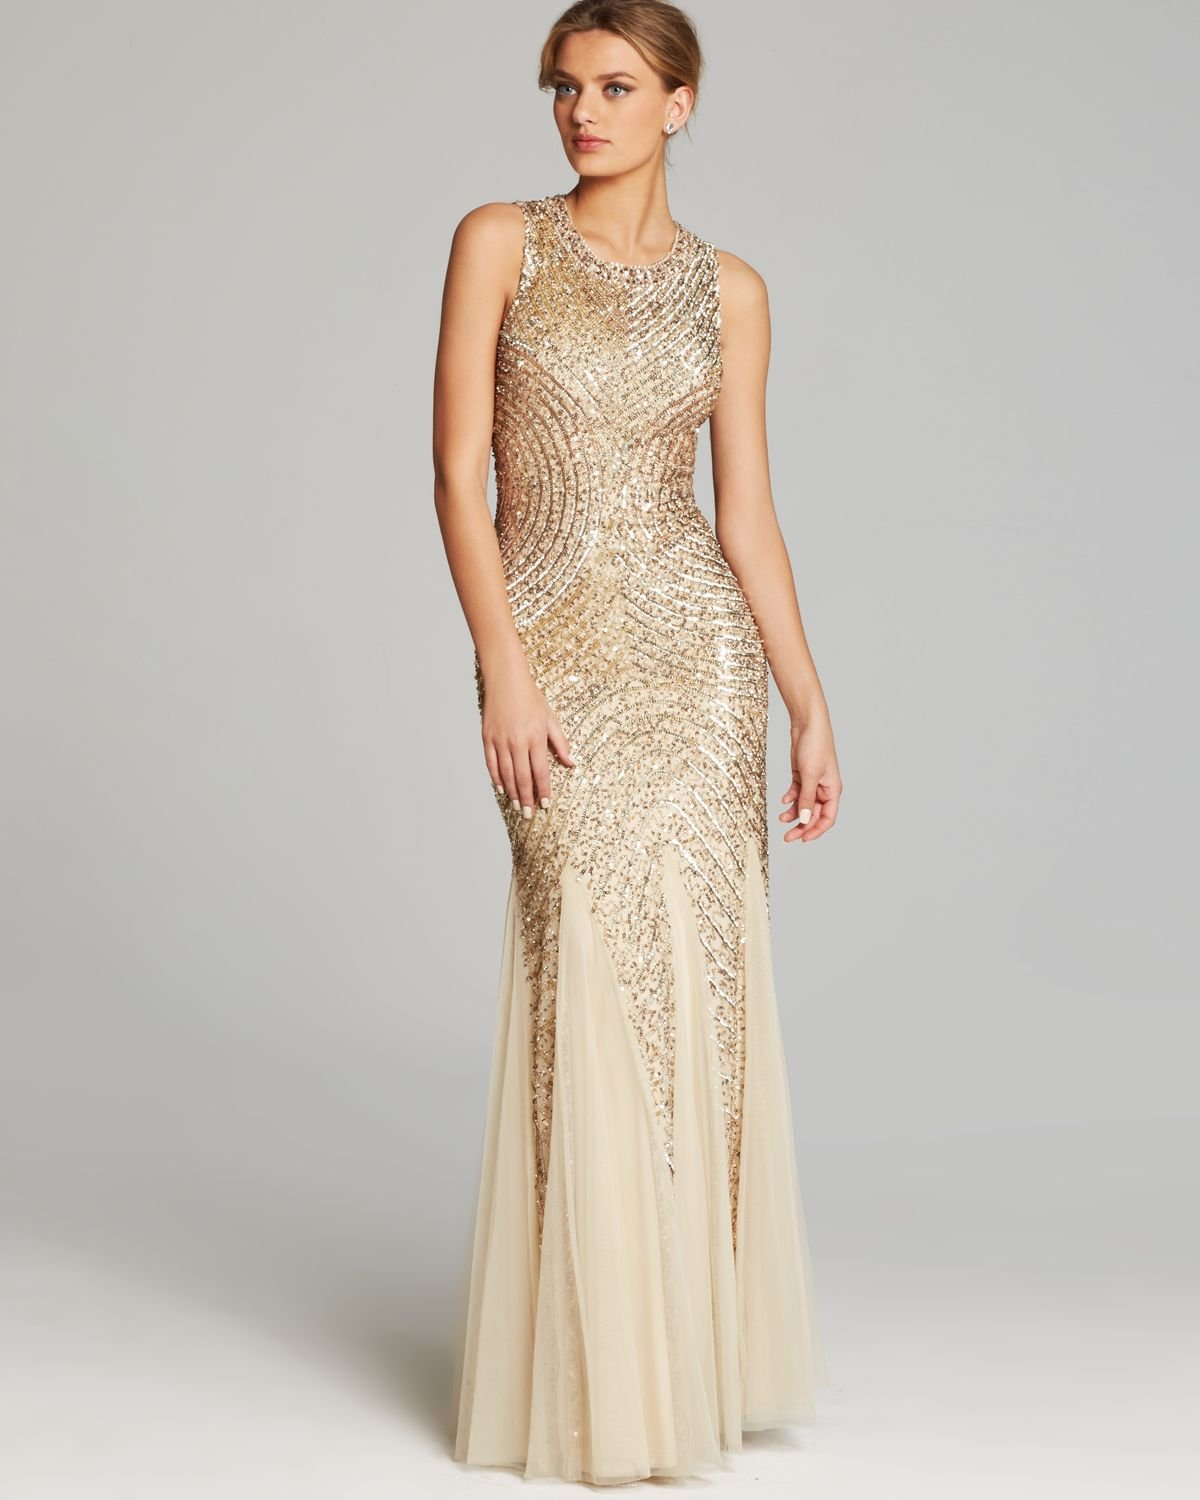 Aidan mattox Gown Sleeveless Sequin Beaded Godet in Metallic | Lyst